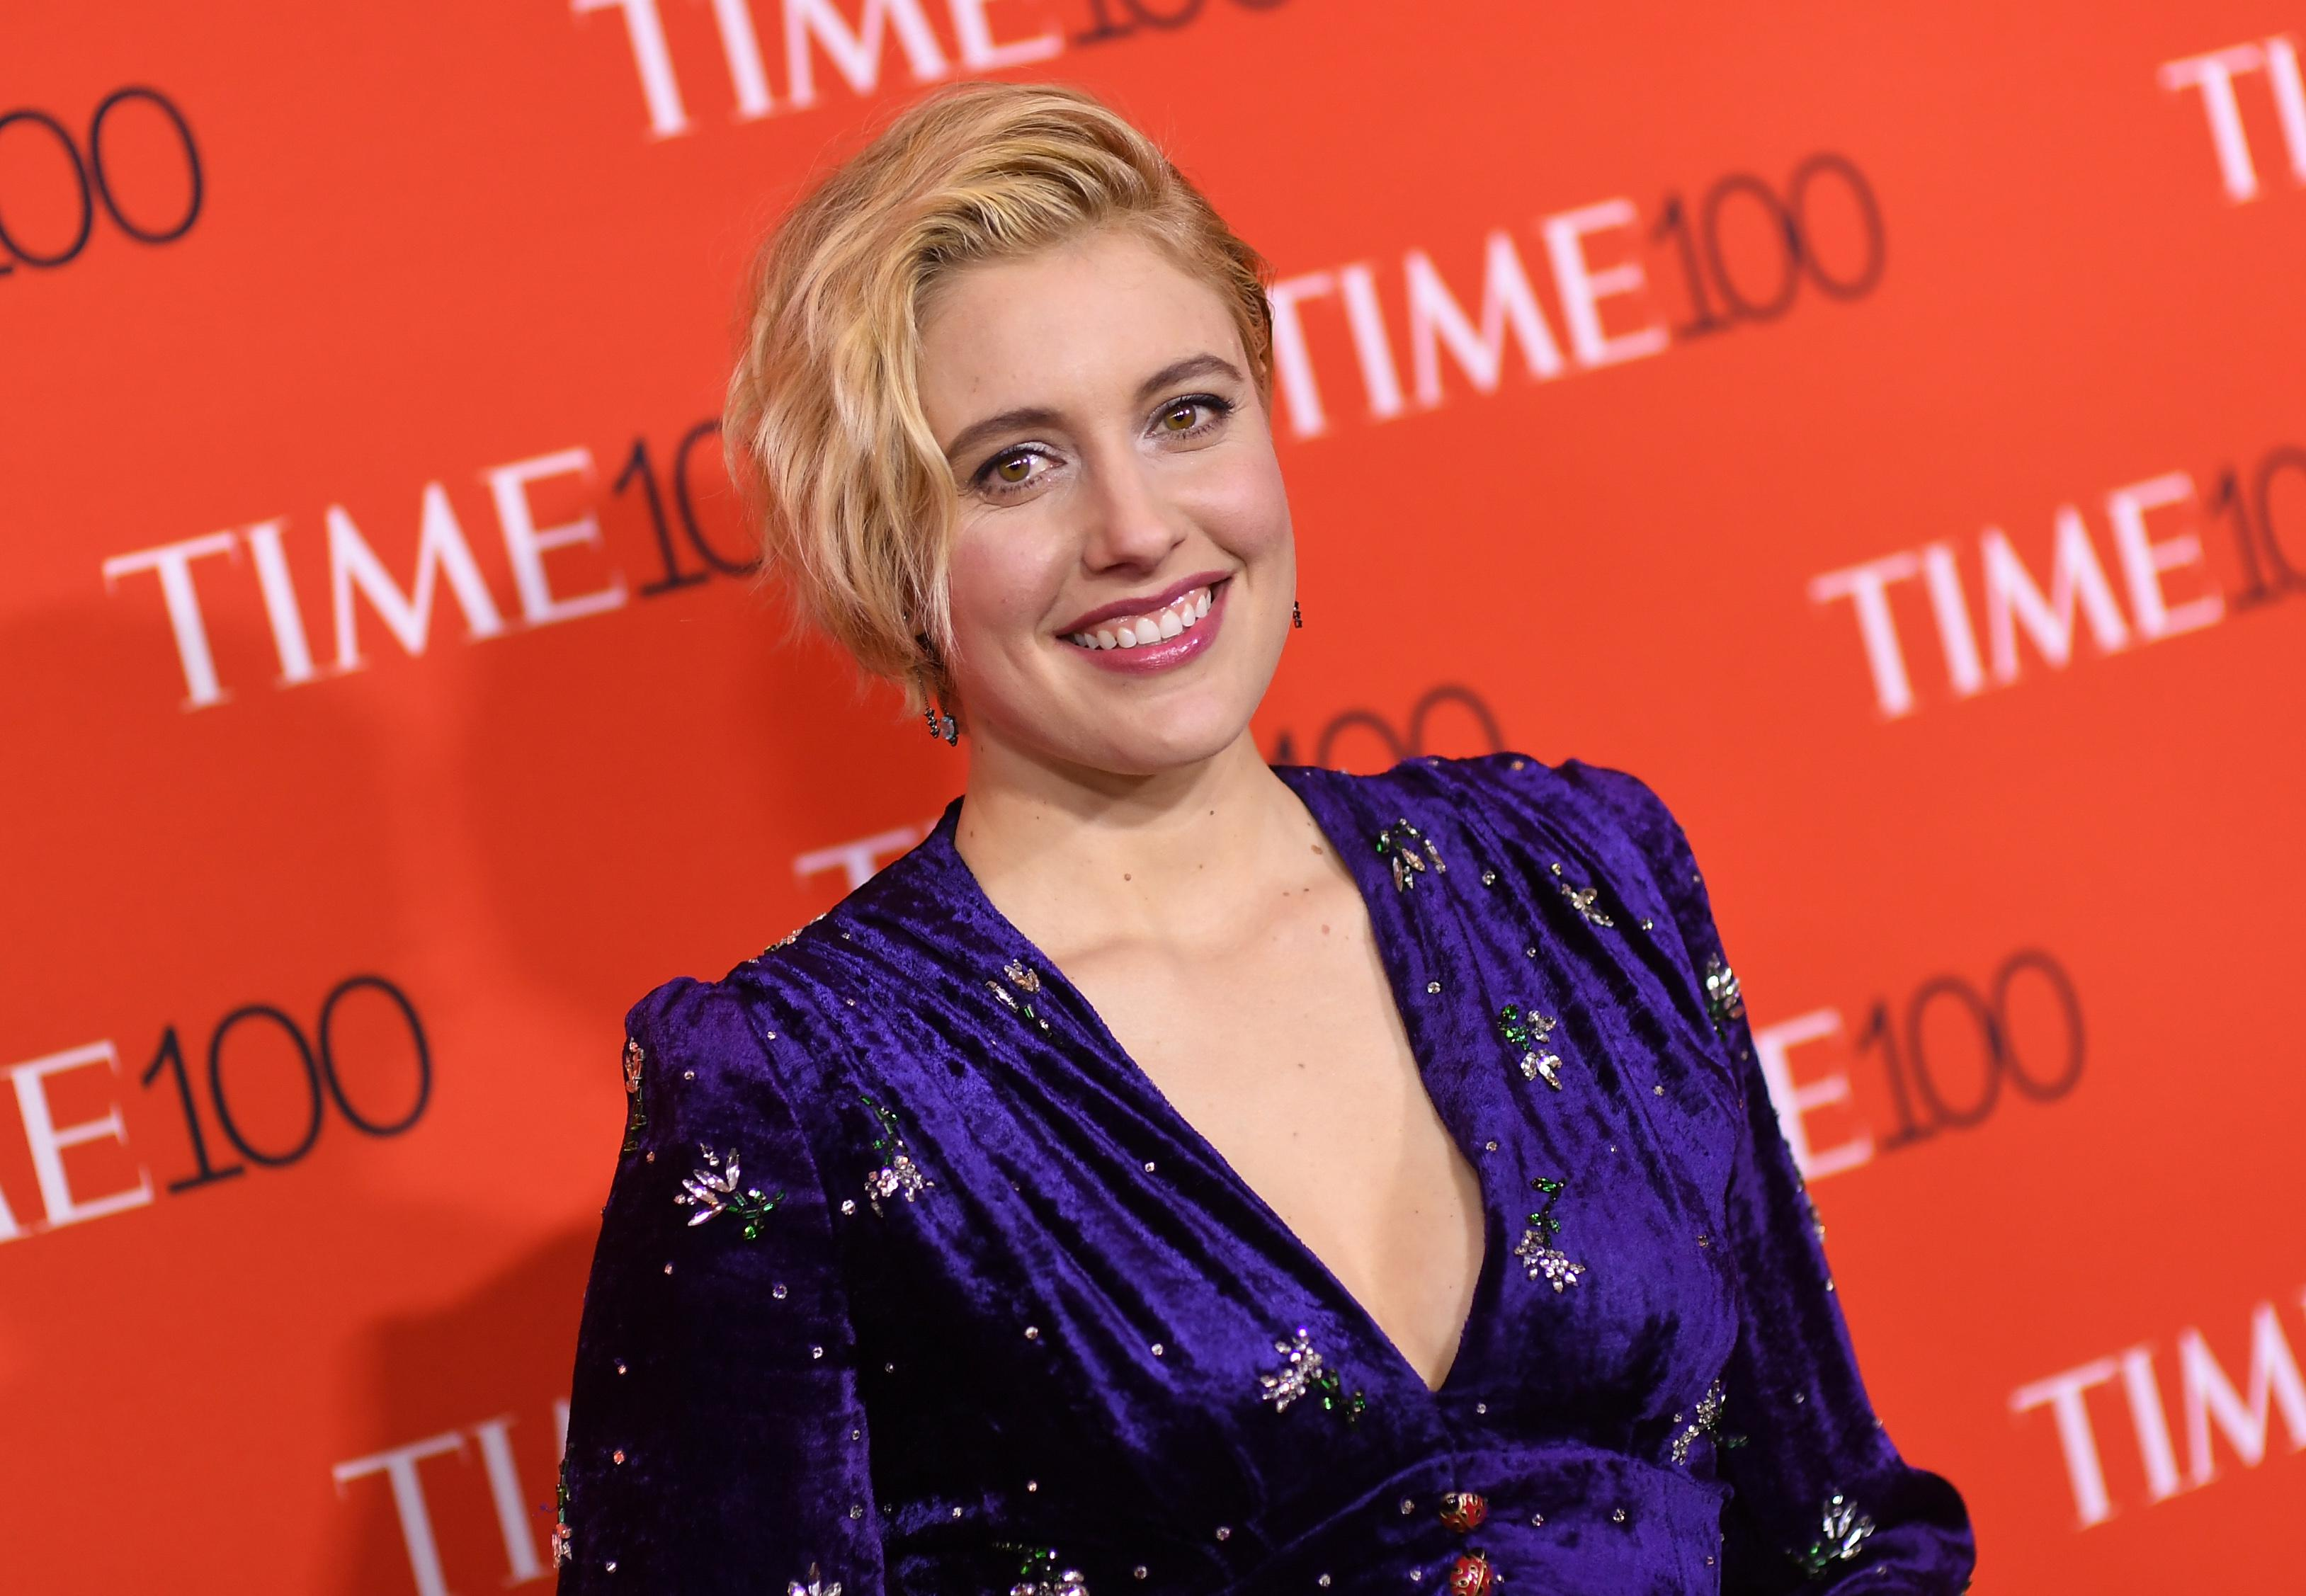 Greta Gerwig attends the TIME 100 Gala celebrating its annual list of the 100 Most Influential People In The World at Frederick P. Rose Hall, Jazz at Lincoln Center on April 24, 2018 in New York City. (Photo by ANGELA WEISS / AFP)        (Photo credit should read ANGELA WEISS/AFP/Getty Images)